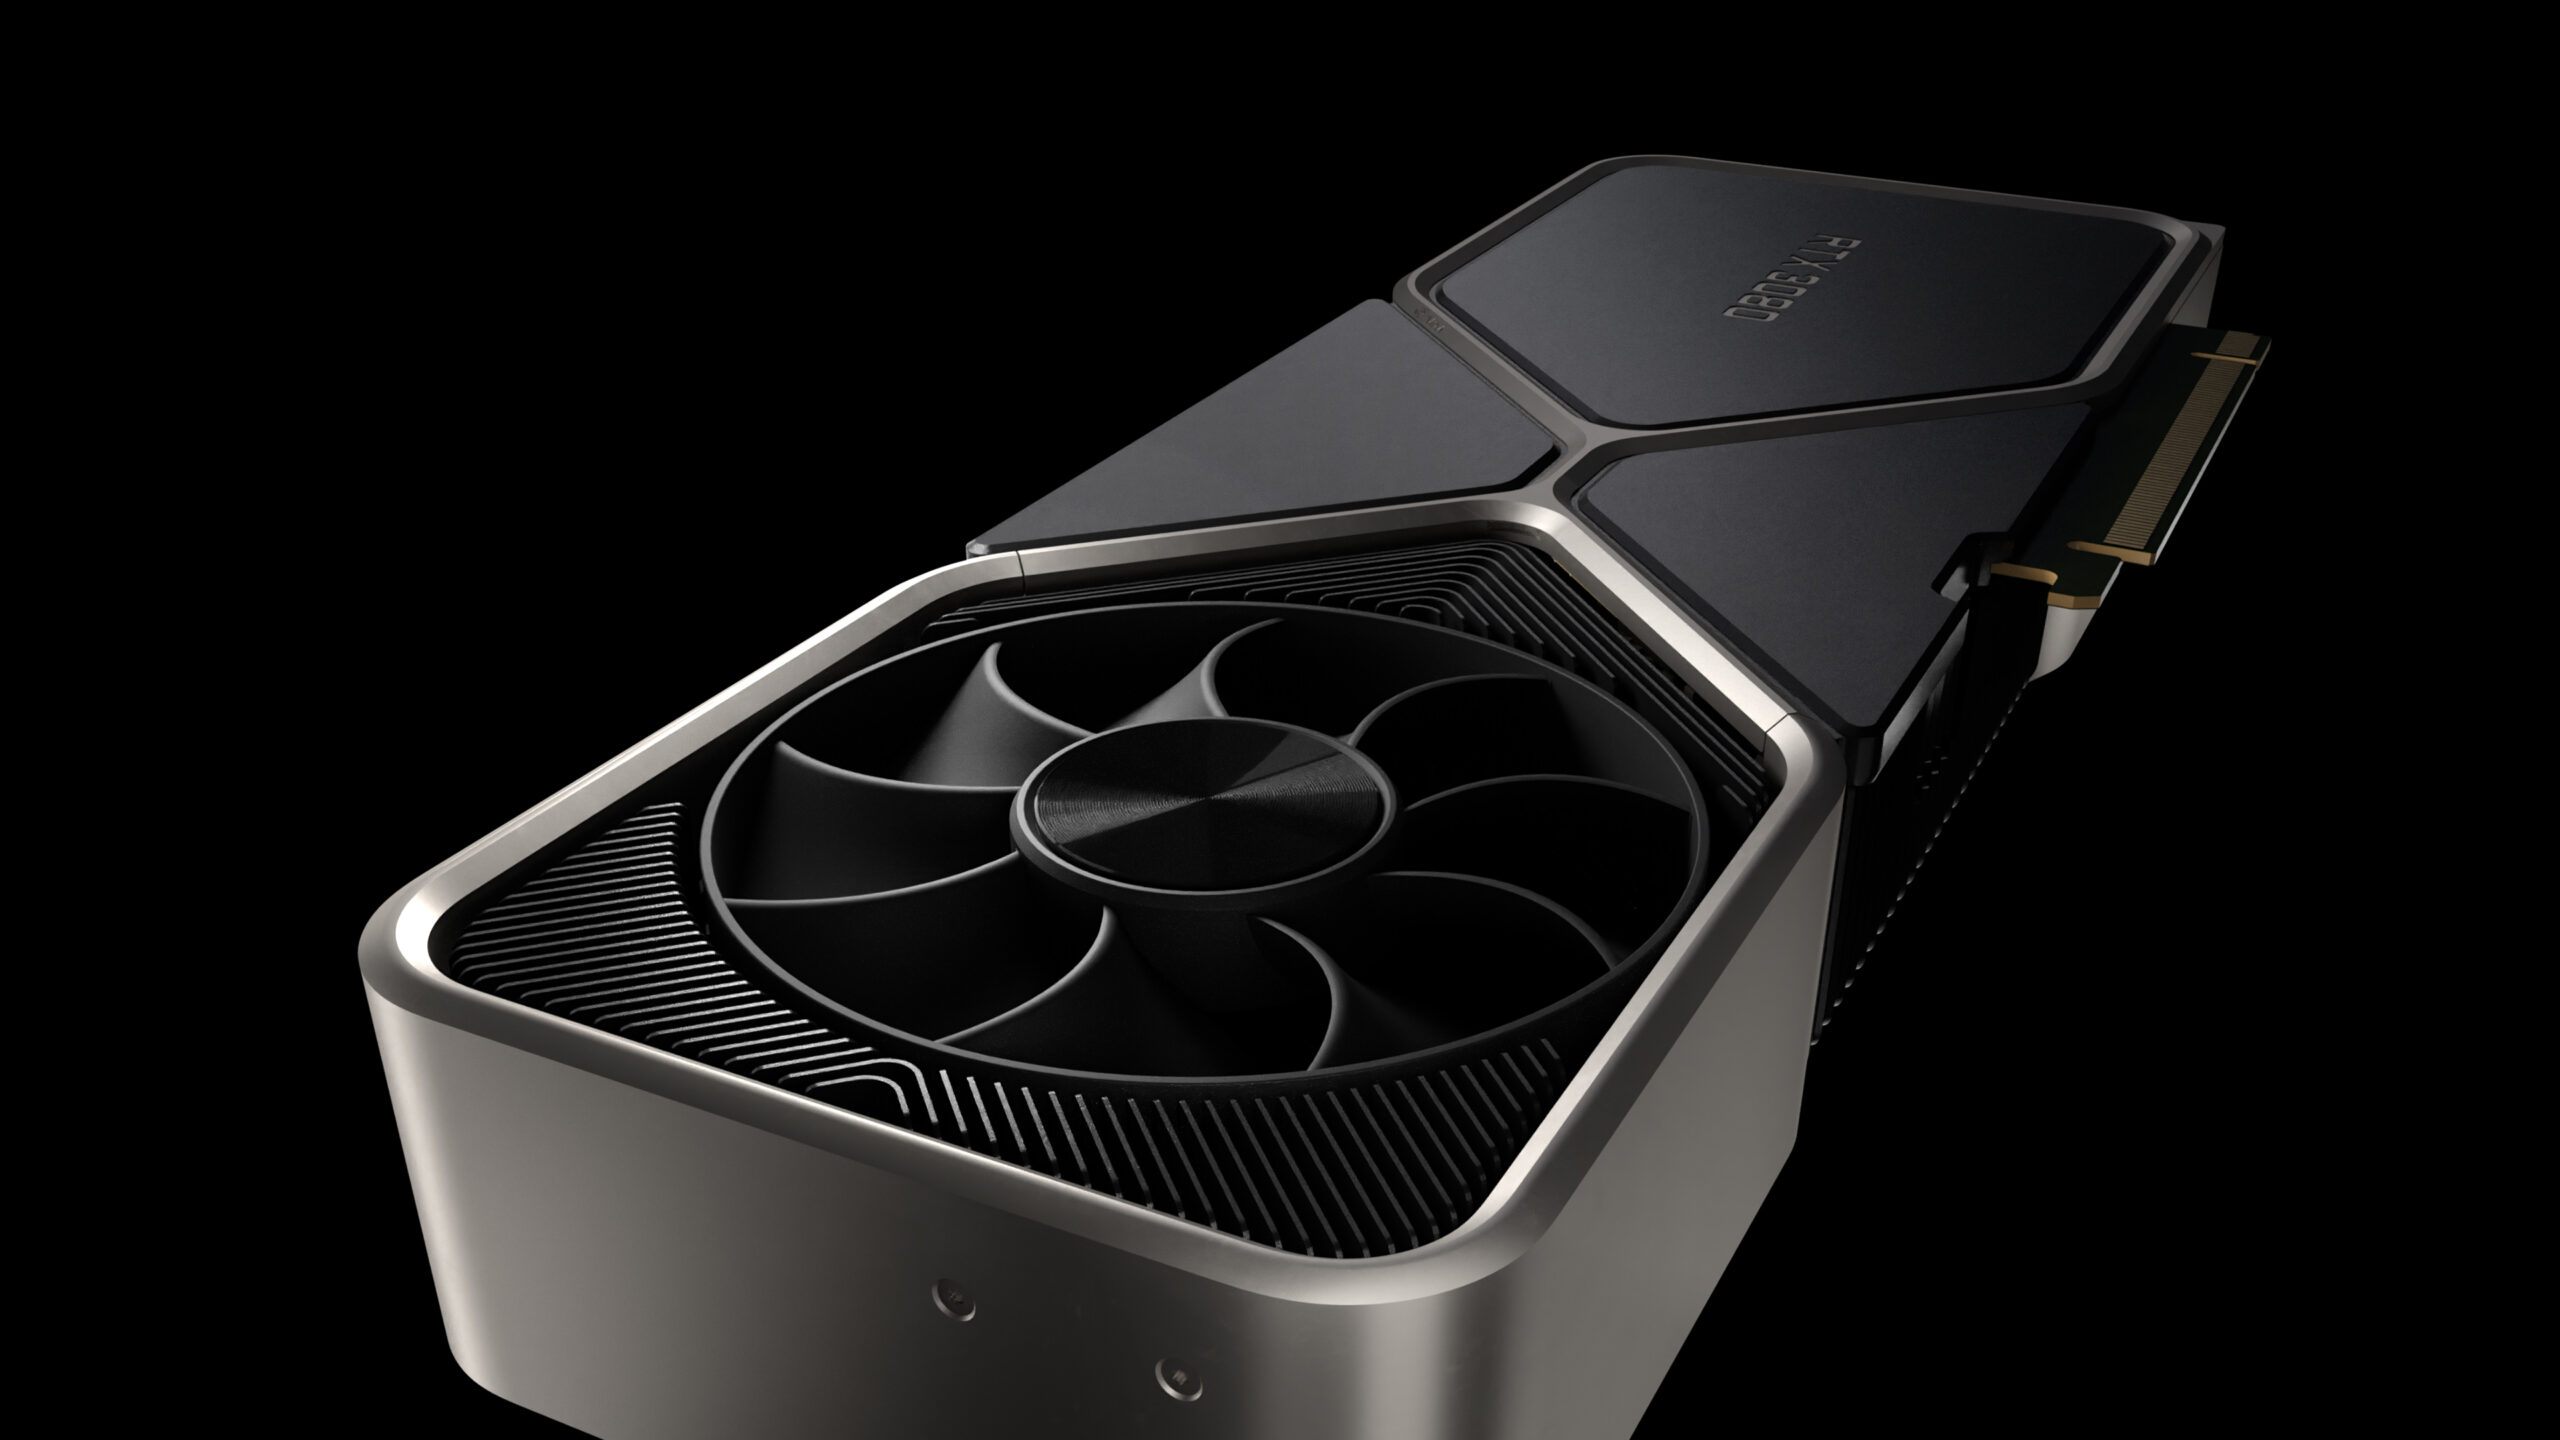 geforce rtx 3080 product gallery full screen 3840 2 scaled